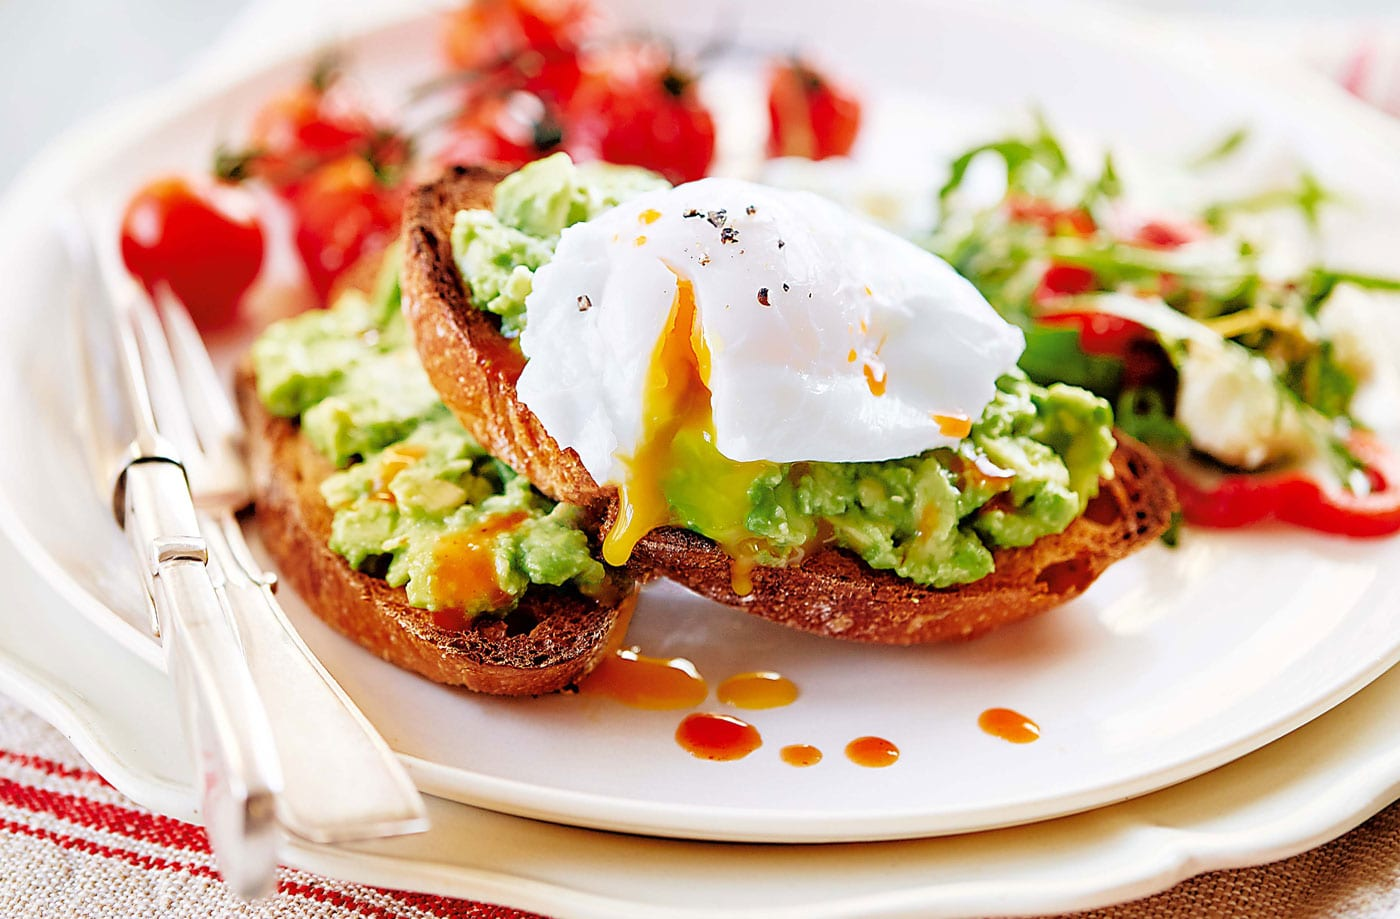 Poached Eggs with Smashed Avocado and Tomatoes